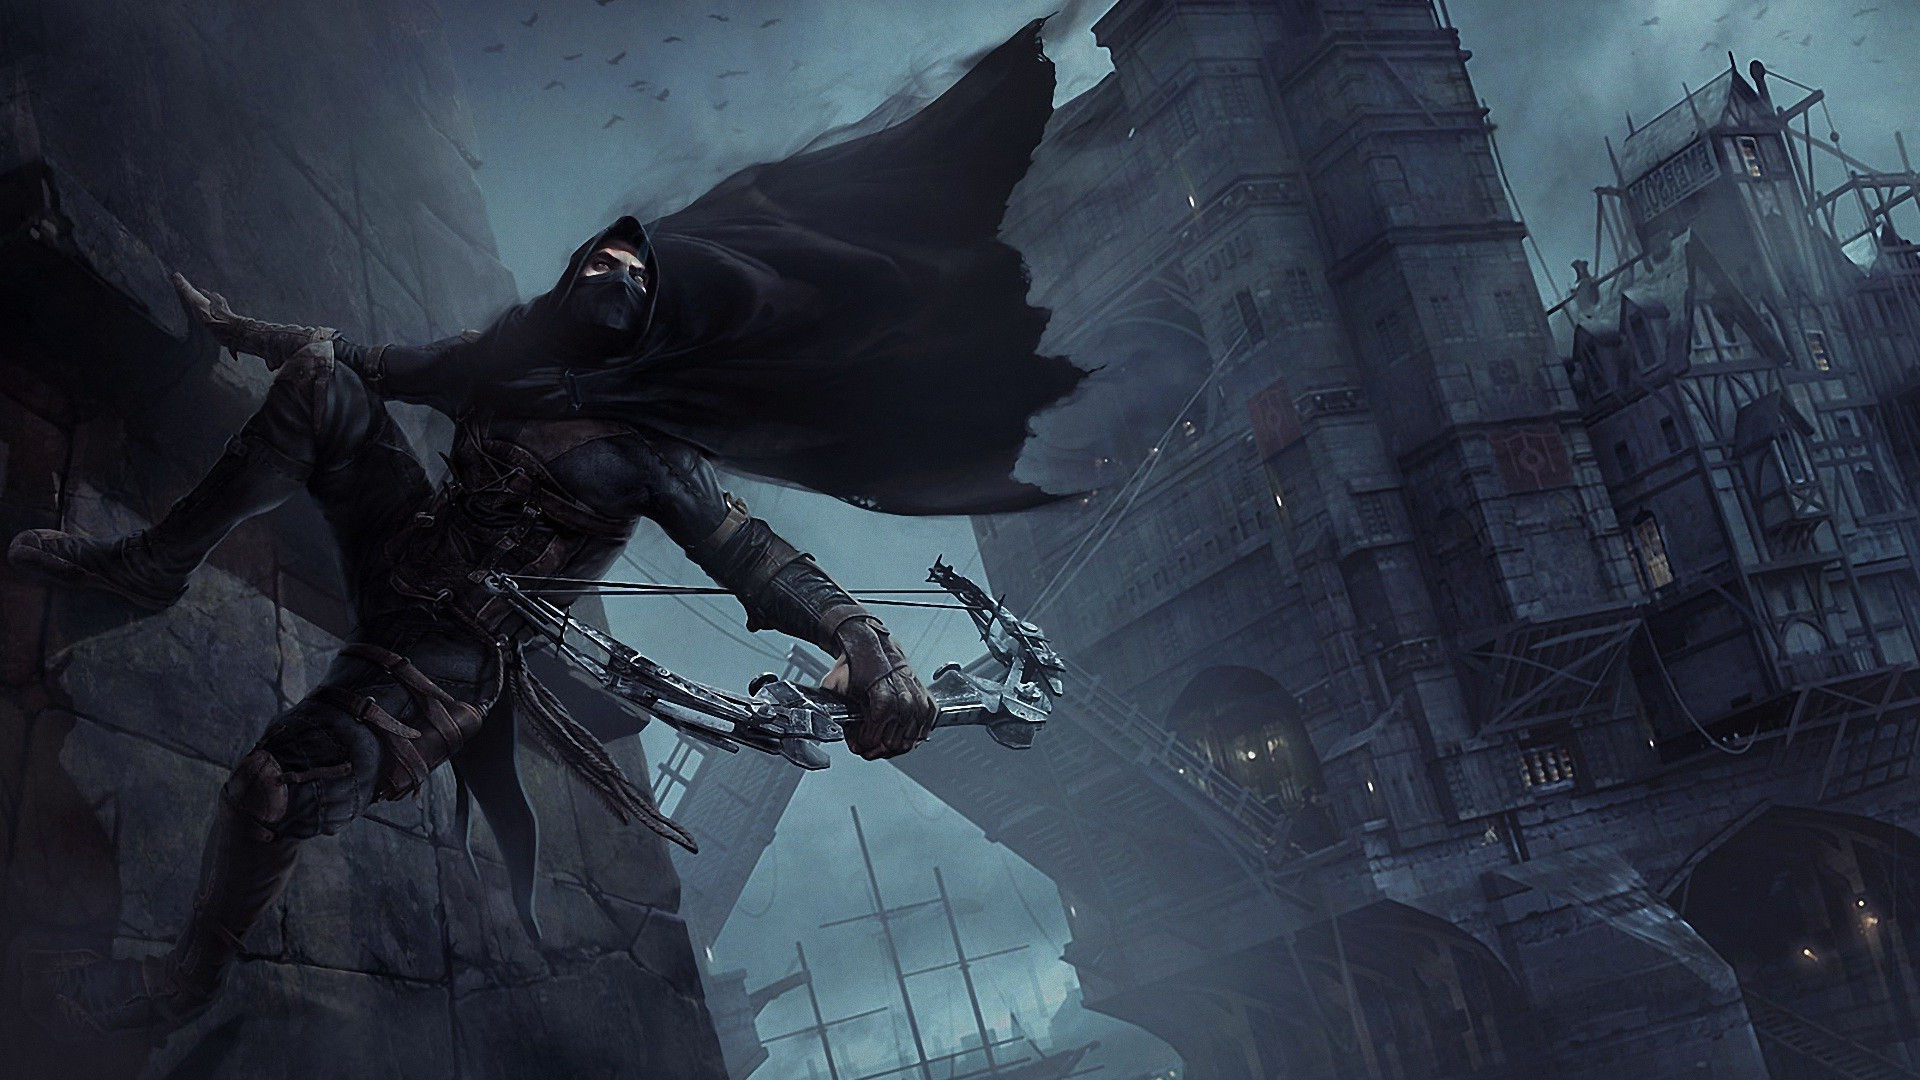 thief 2 wallpaper - photo #32